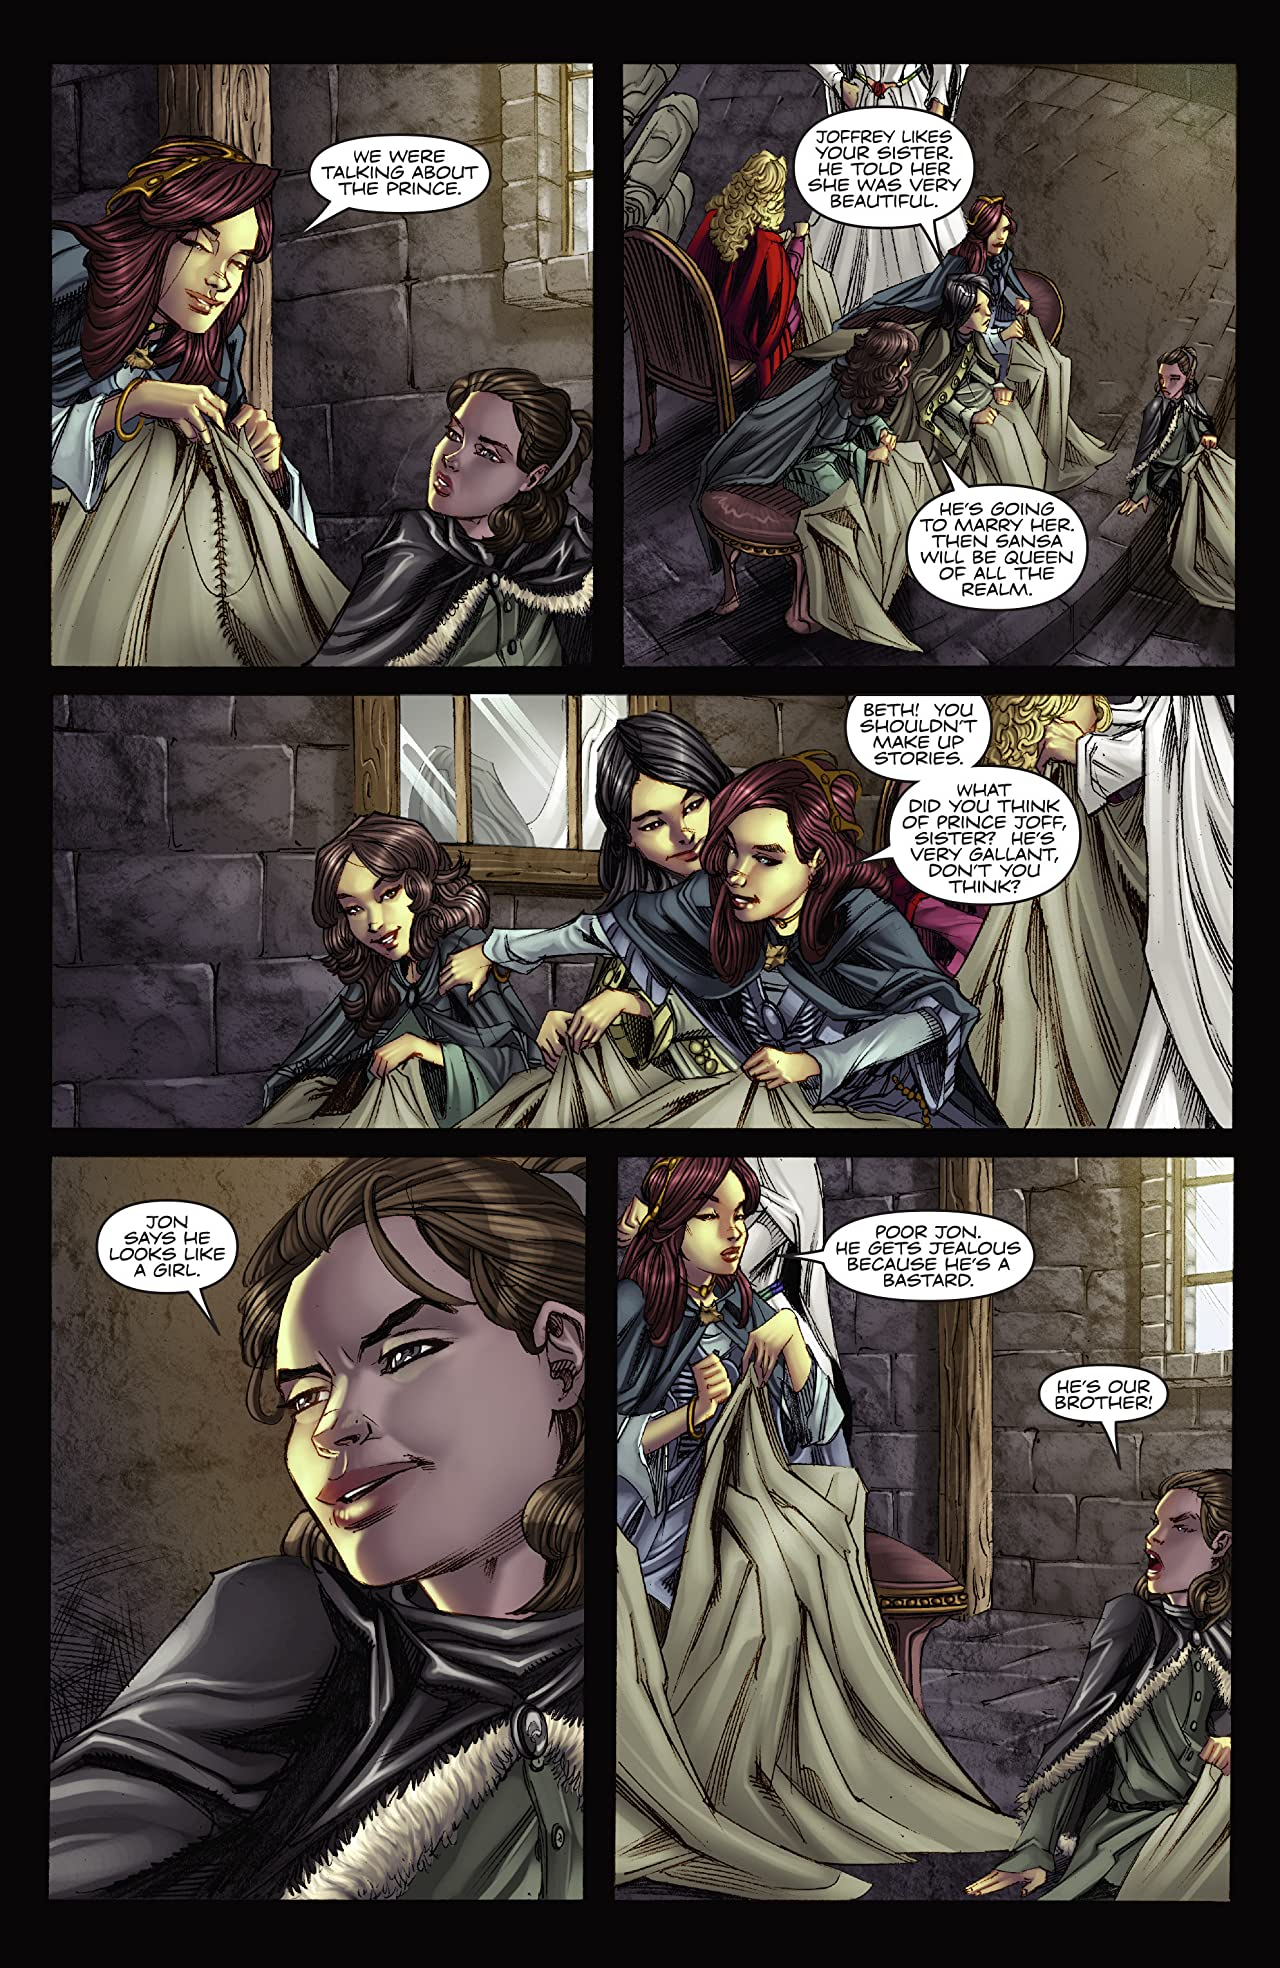 George R.R. Martin's A Game Of Thrones: The Comic Book #3